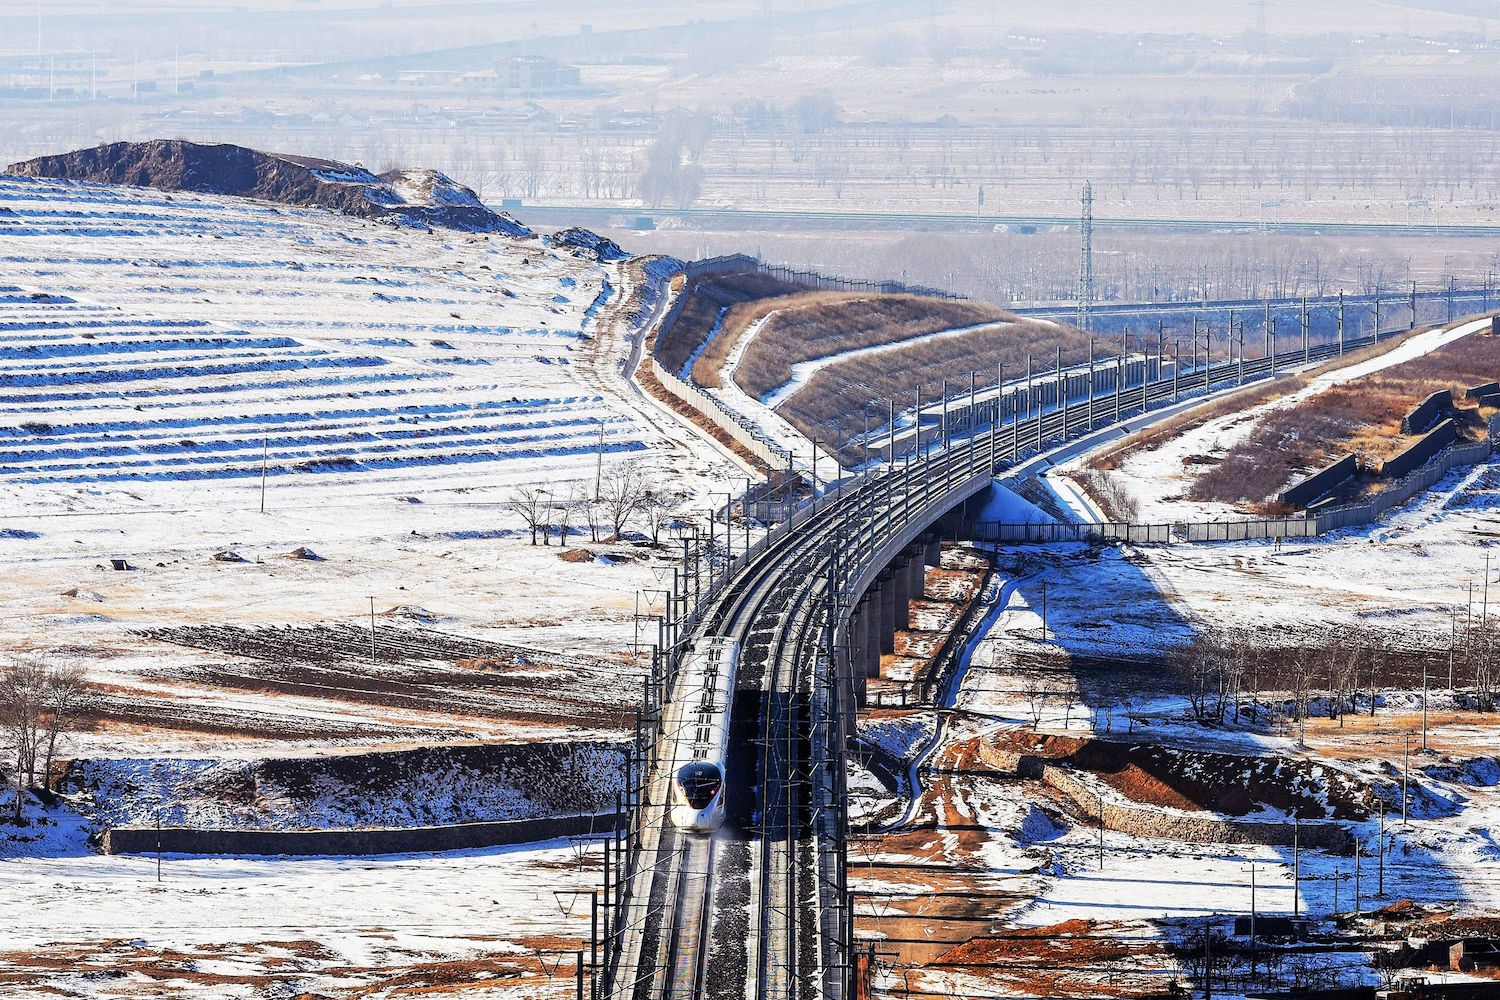 A bullet train undergoes a test run between Beijing and Hohhot in China's northern Inner Mongolia region on Dec. 9, 2019.